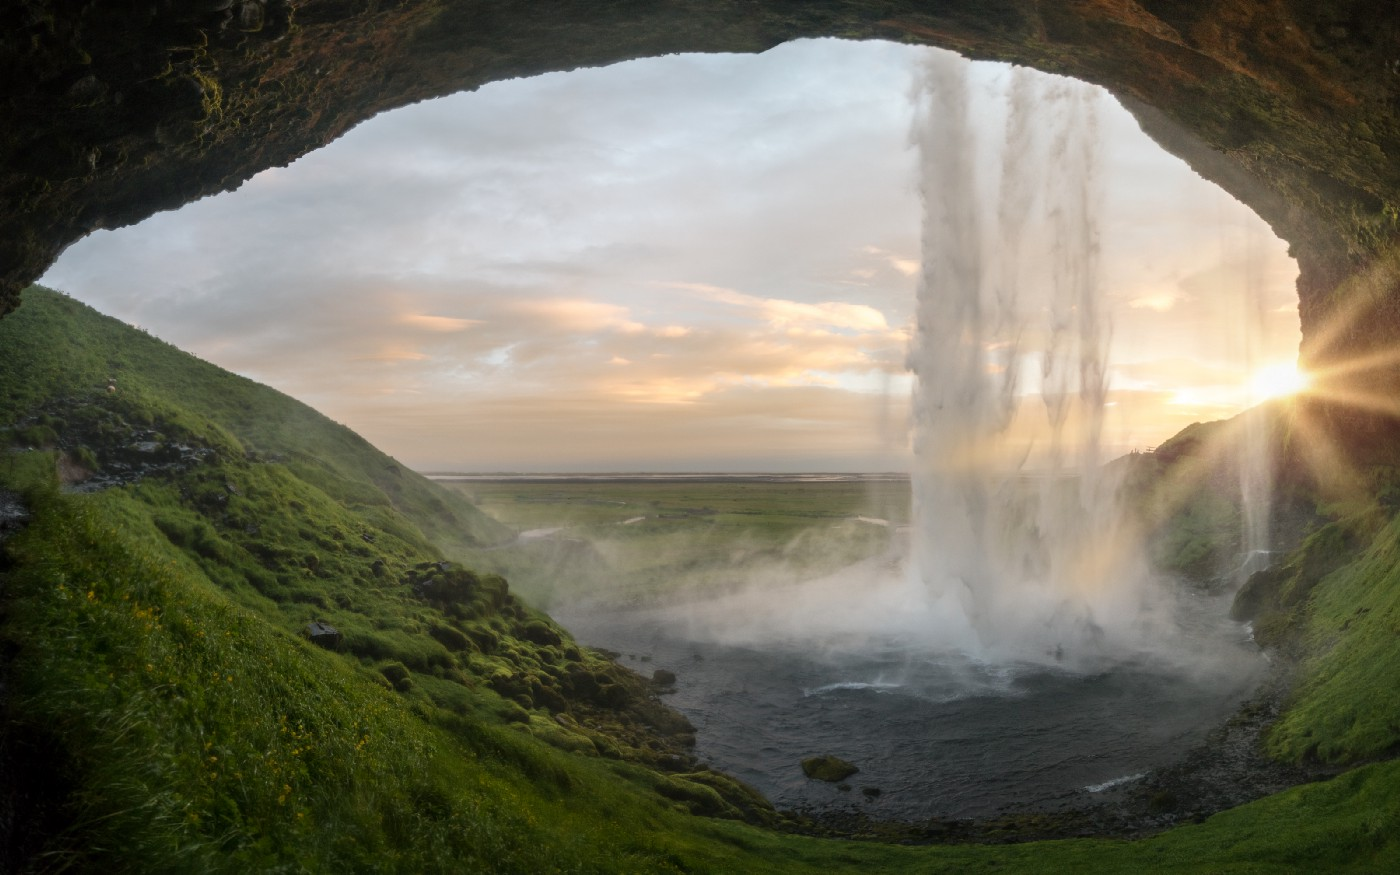 Waterfall as seen through a cave entrence